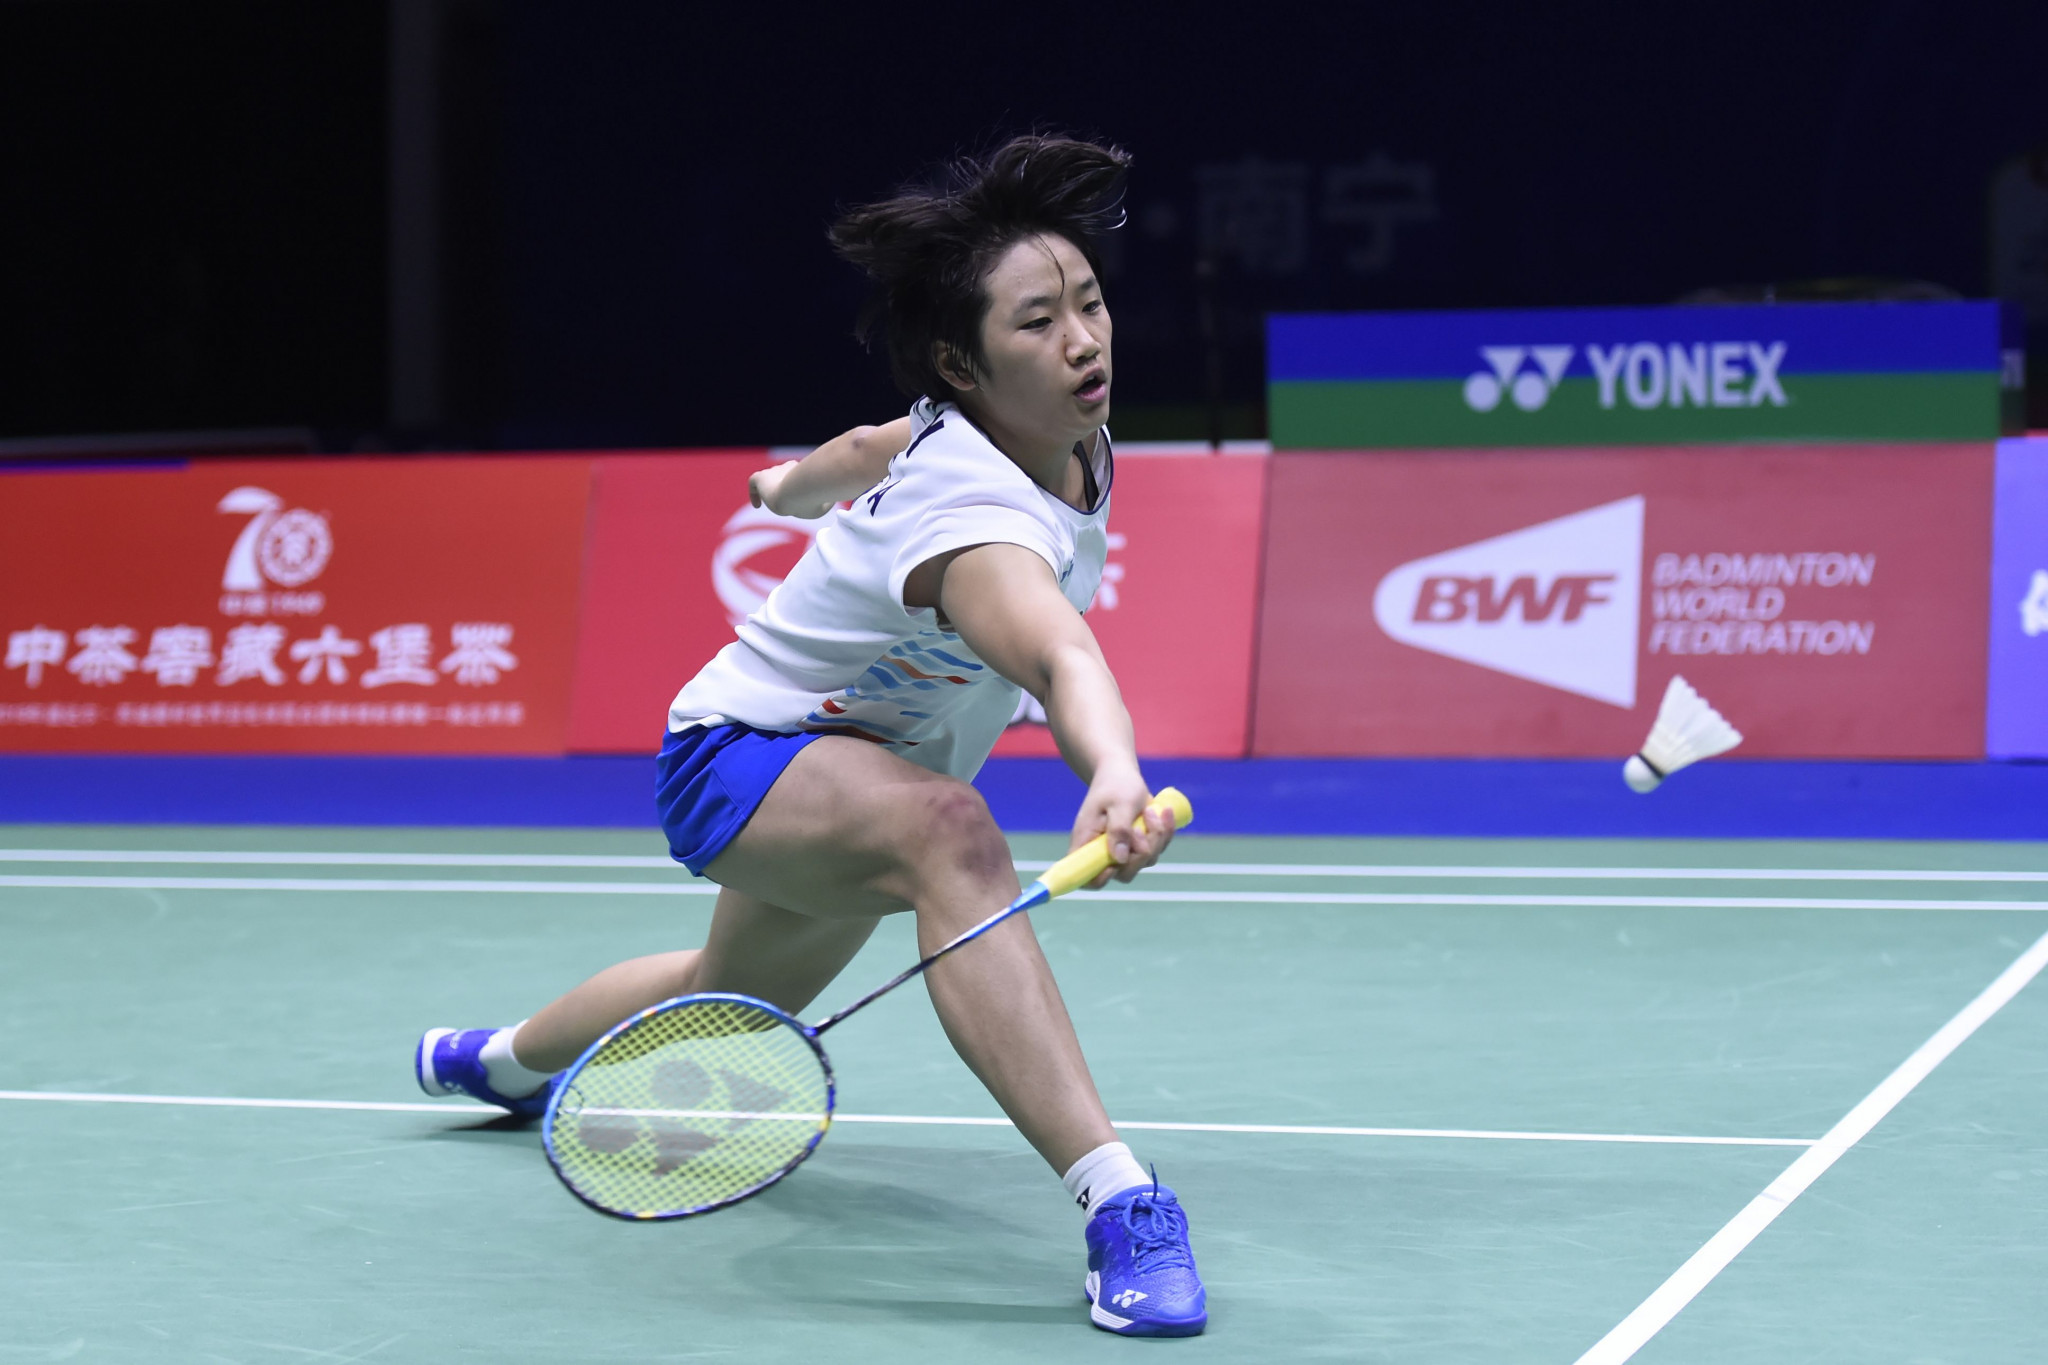 Teenage star An beats Olympic champion Marín to clinch BWF French Open title